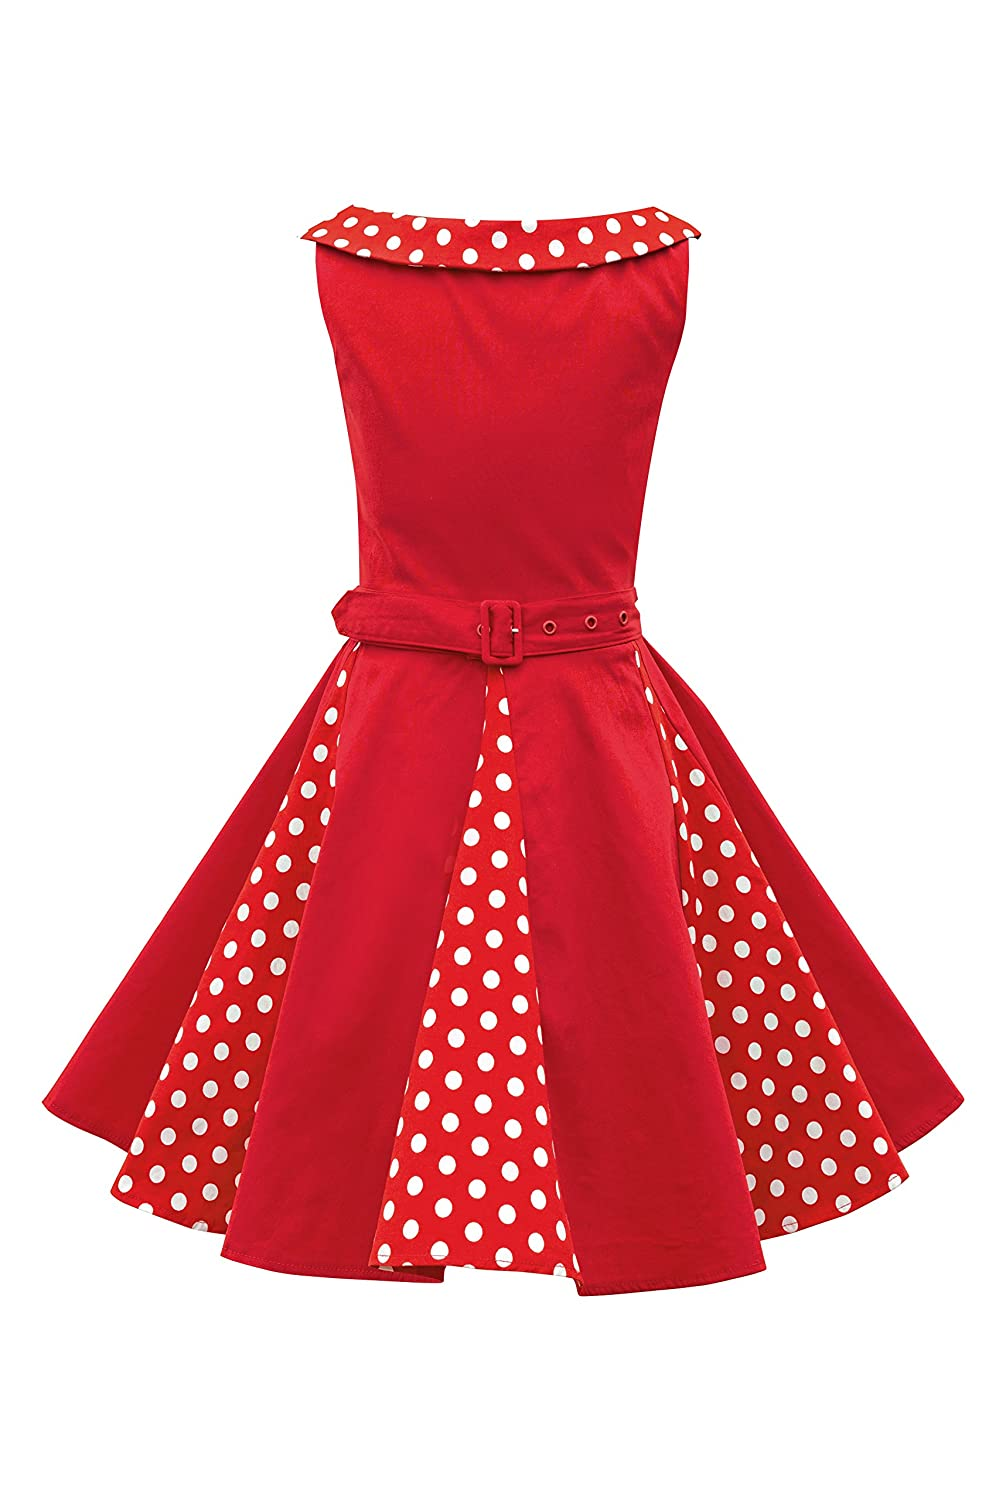 BlackButterfly Kids 'Alexia' Vintage Polka Dot 50's Girls Dress